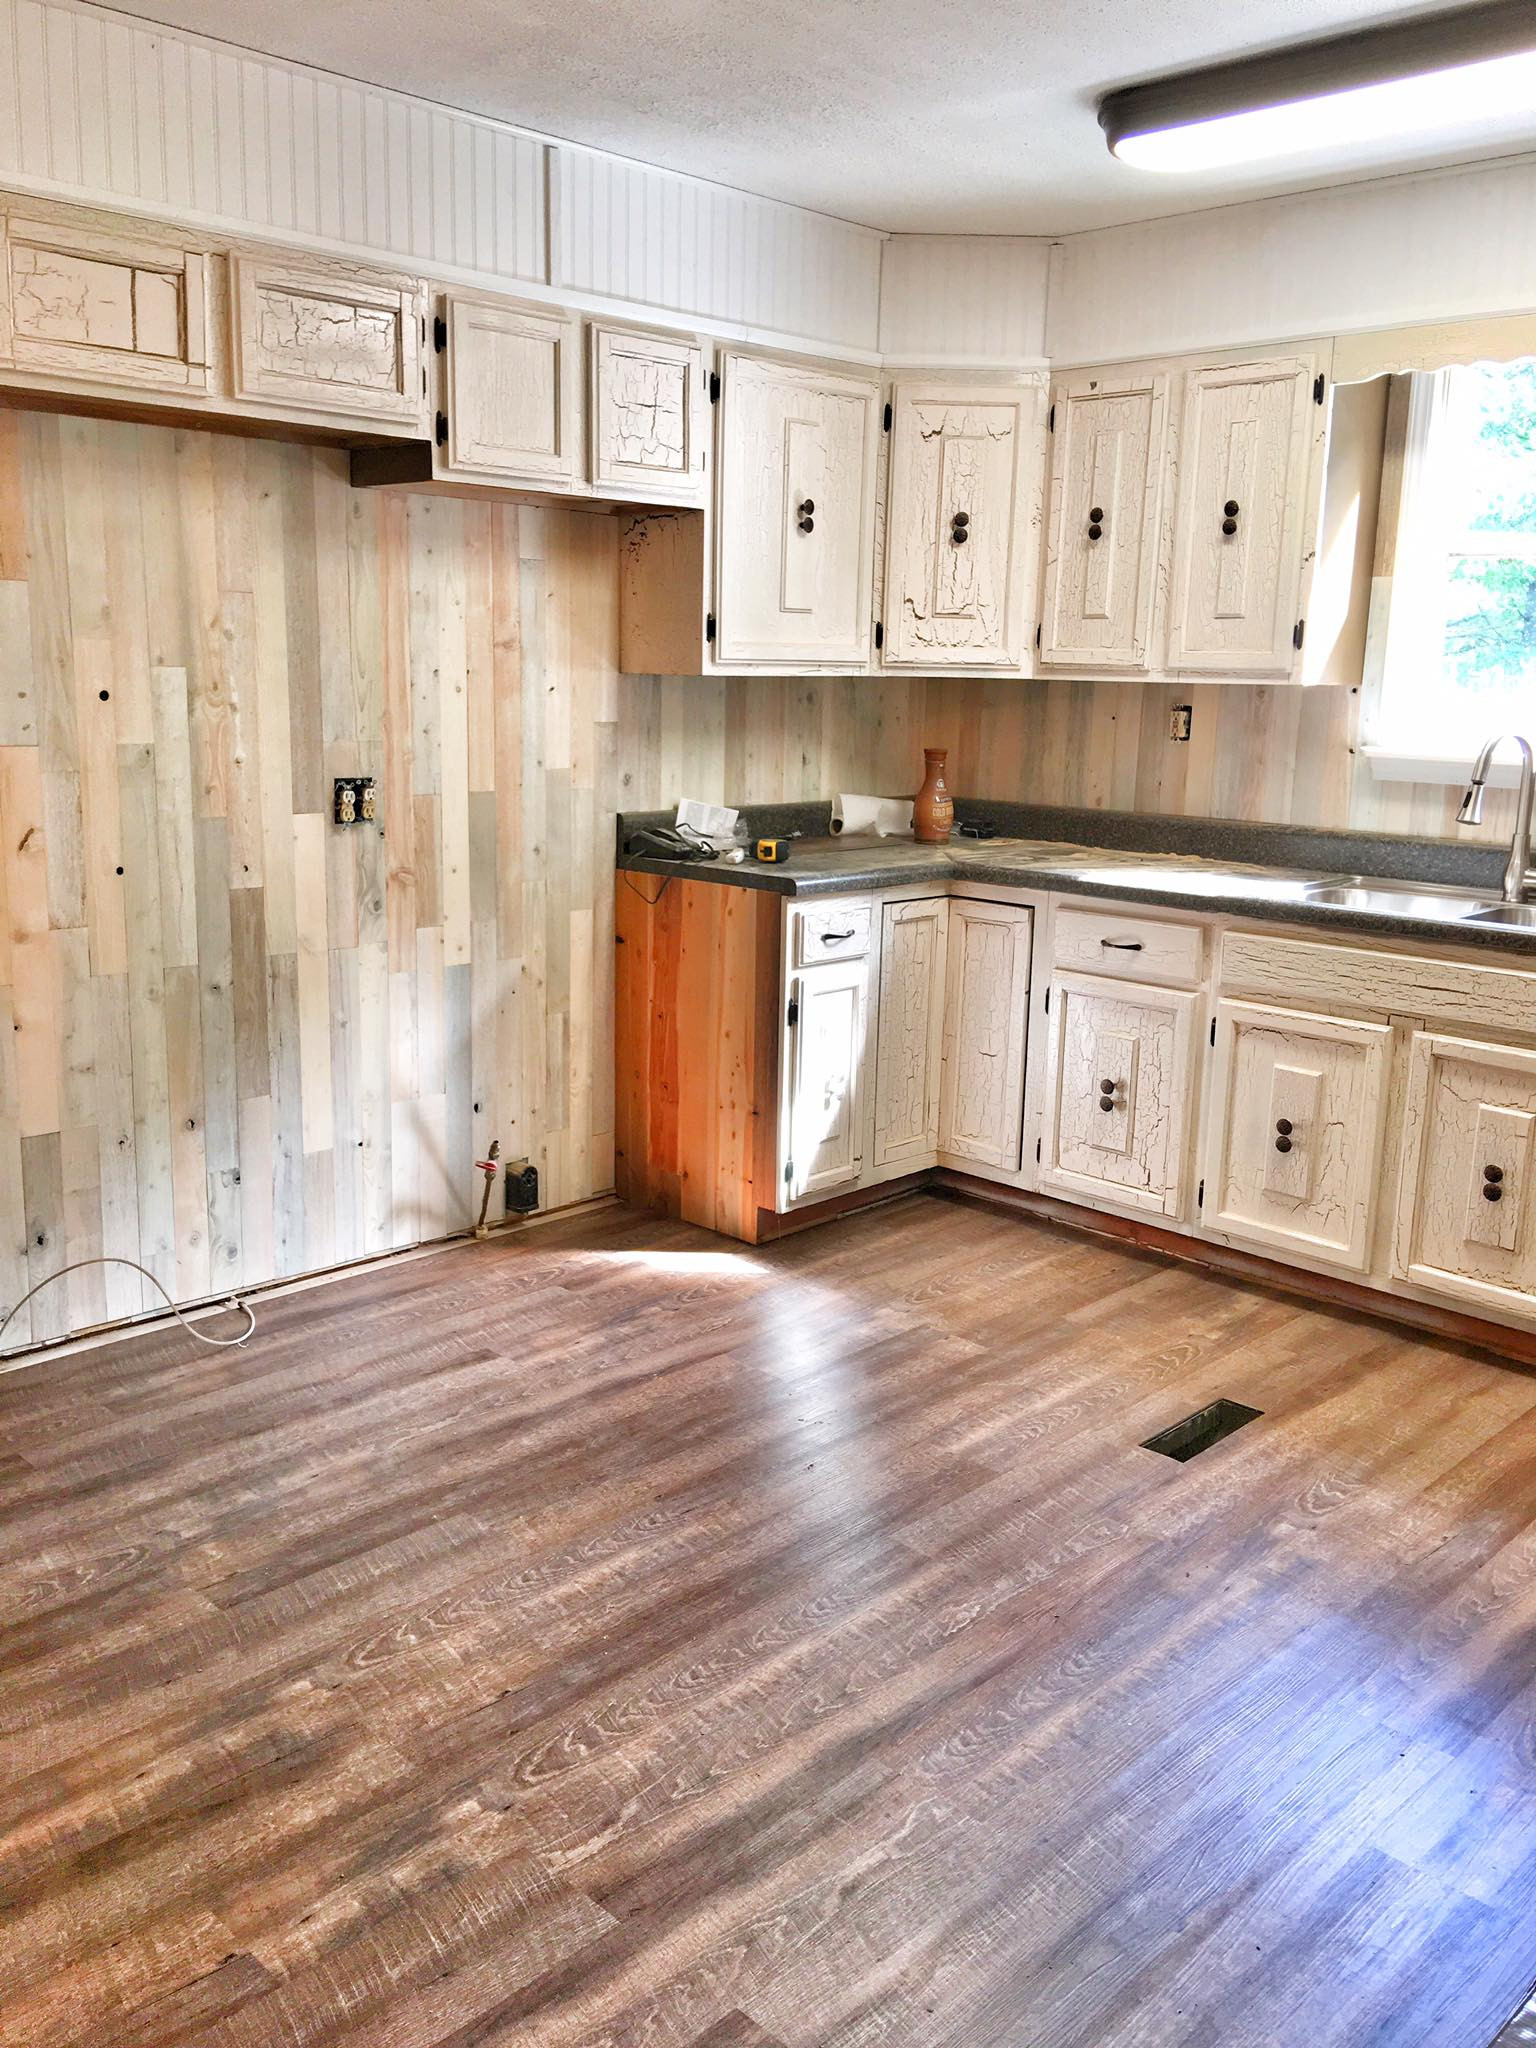 17 attractive Reclaimed Hardwood Flooring Maine 2021 free download reclaimed hardwood flooring maine of timberchic easy to use peel and stick wood planks to update your with coastal white